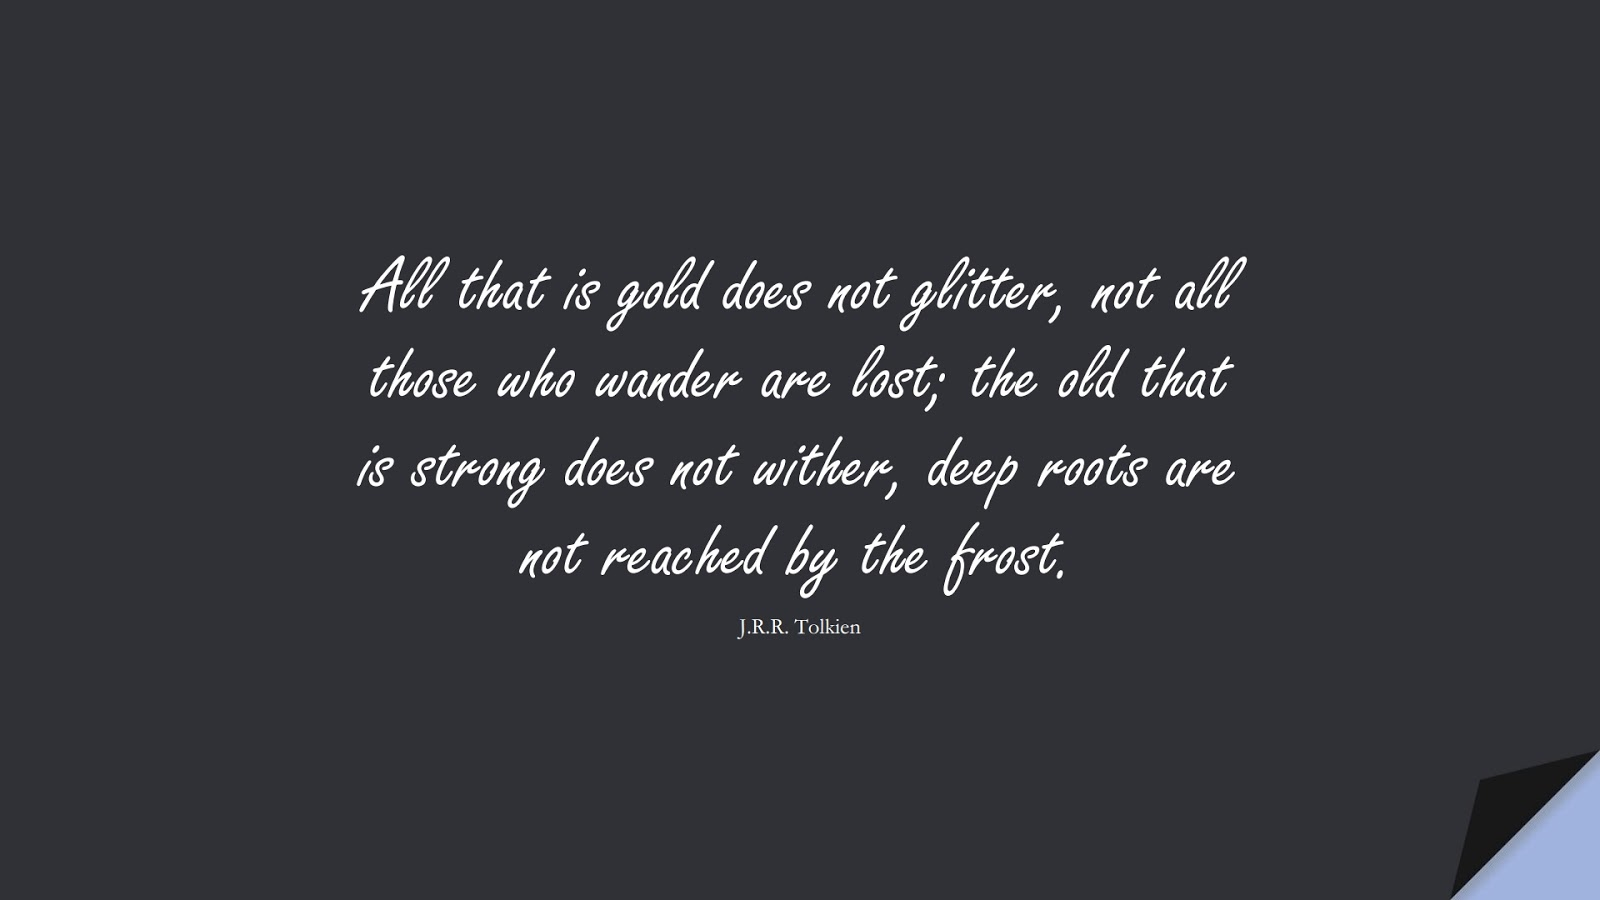 All that is gold does not glitter, not all those who wander are lost; the old that is strong does not wither, deep roots are not reached by the frost. (J.R.R. Tolkien);  #WordsofWisdom